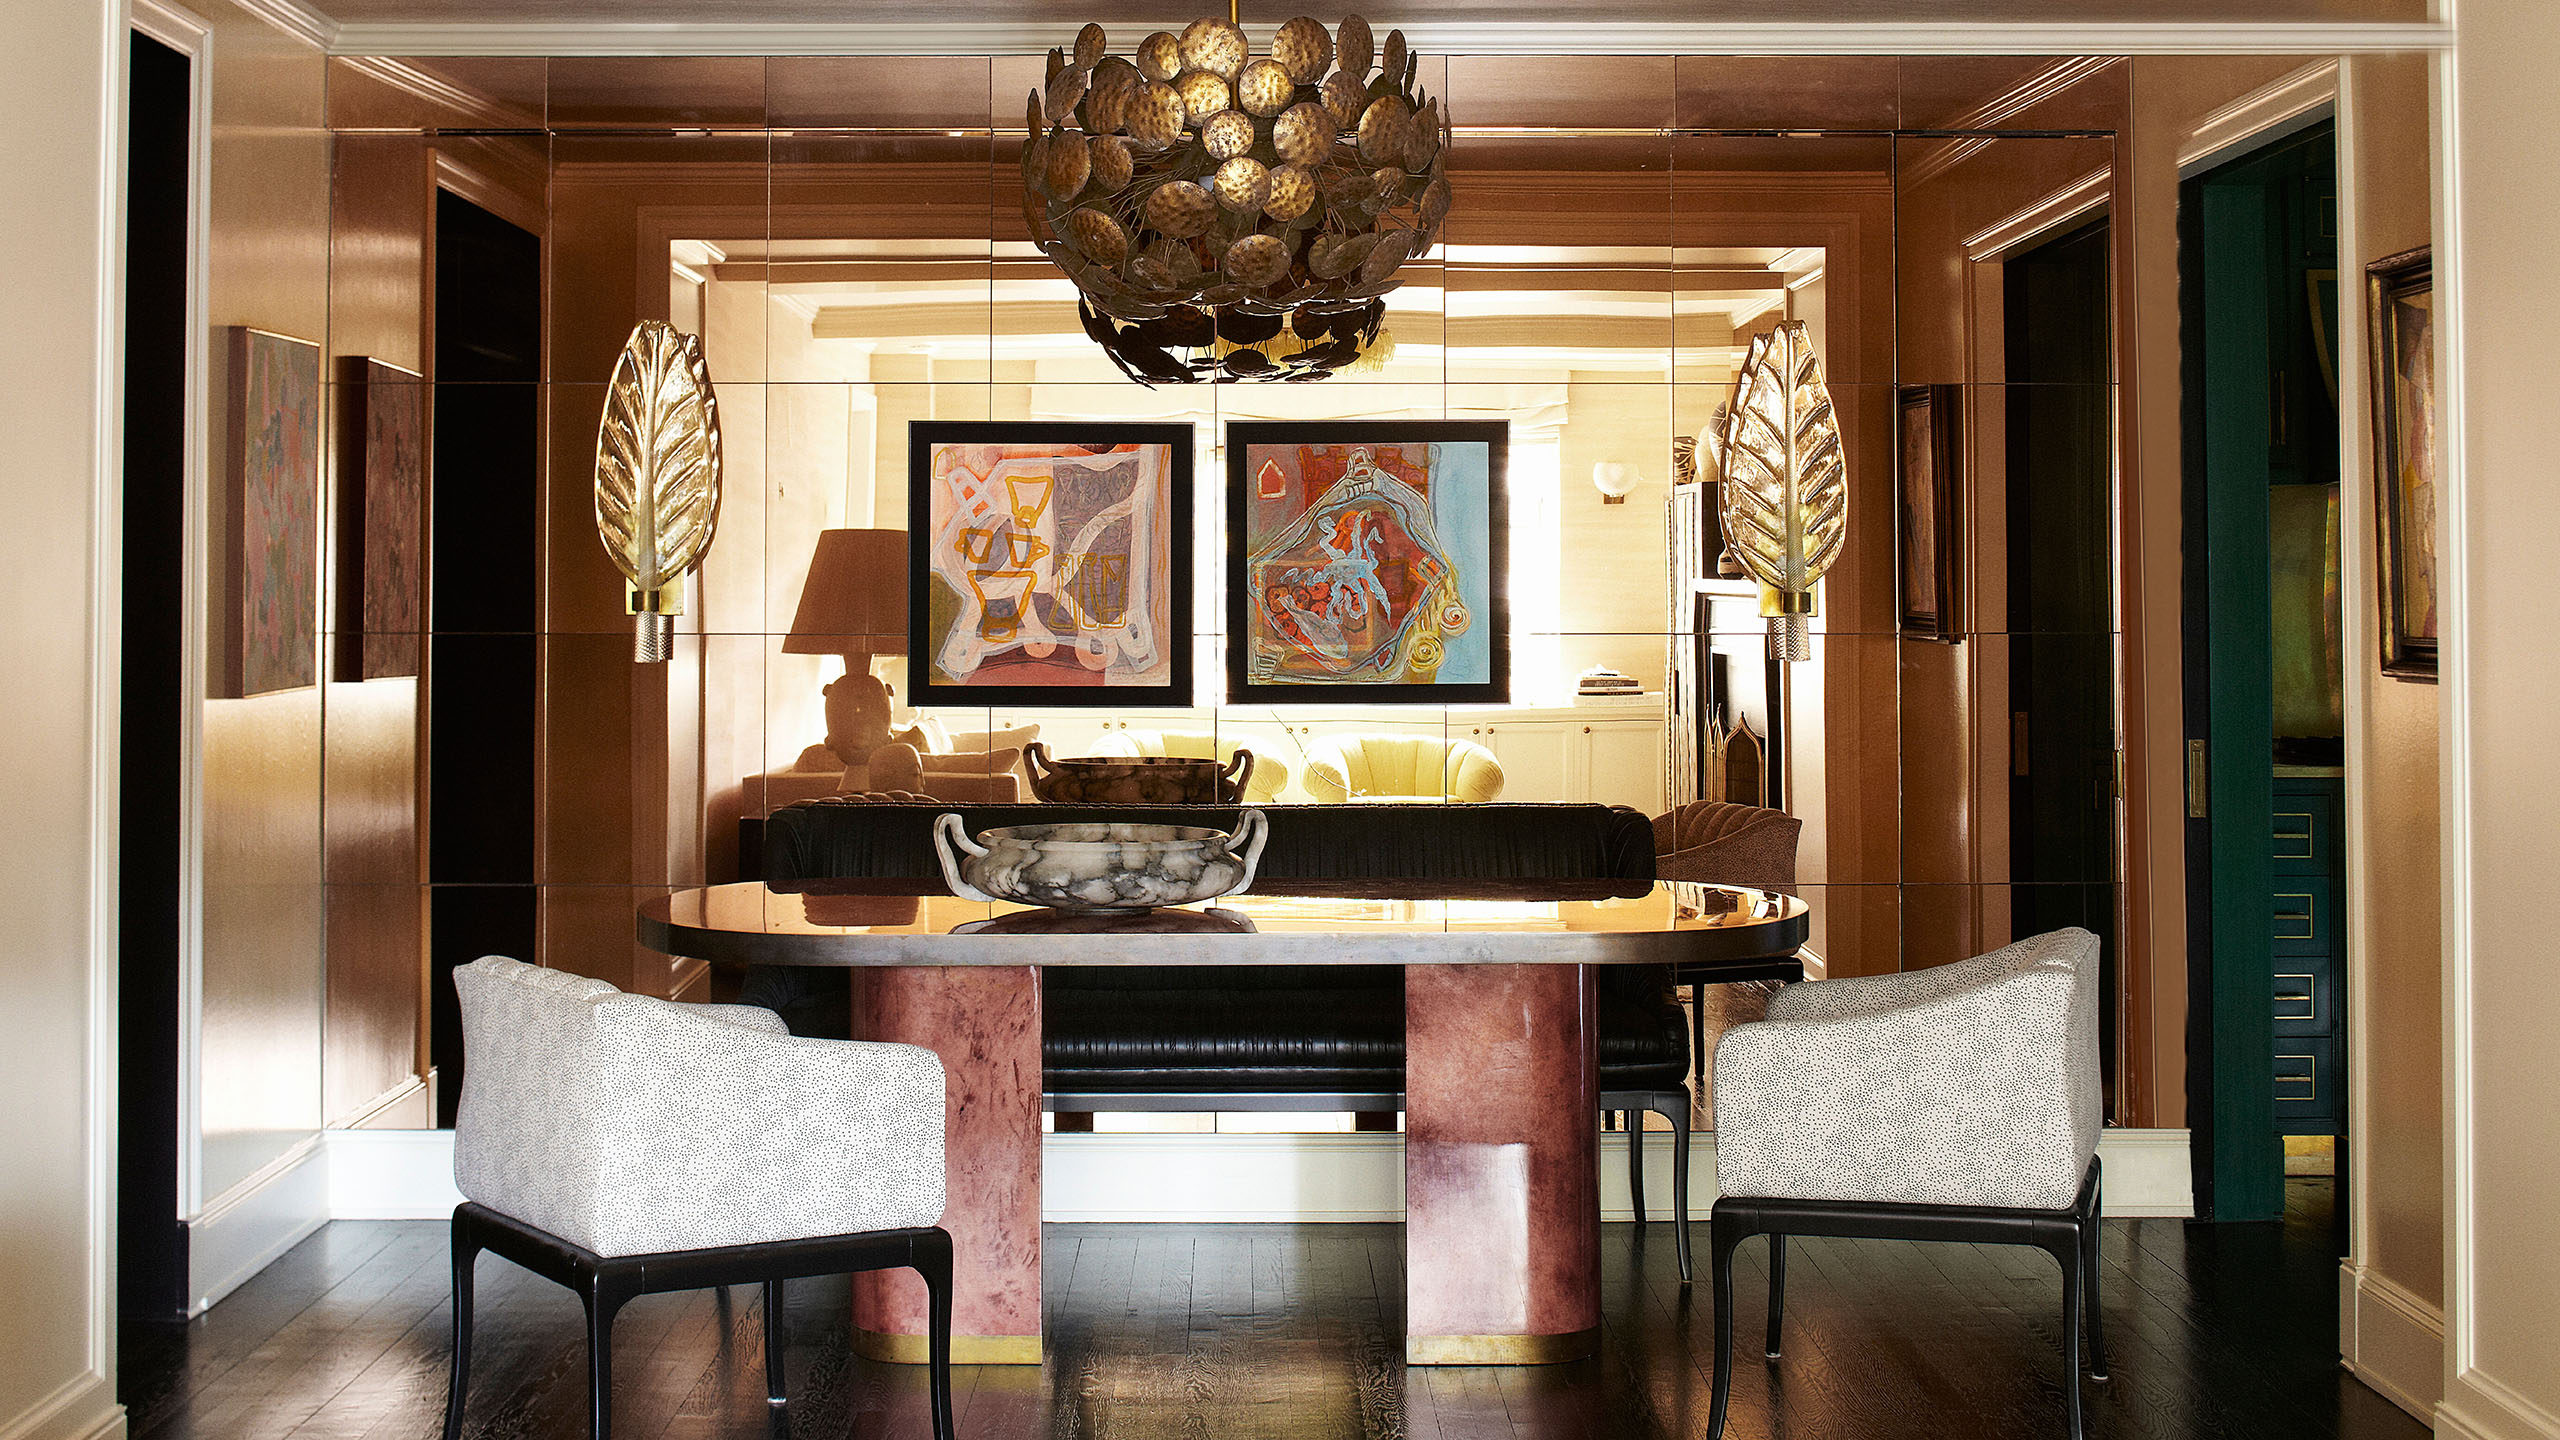 Manhattan Apartment Kelly Wearstler Interior Designers Best Interior  Designers: Top Projects By Kelly Wearstler Manhattan